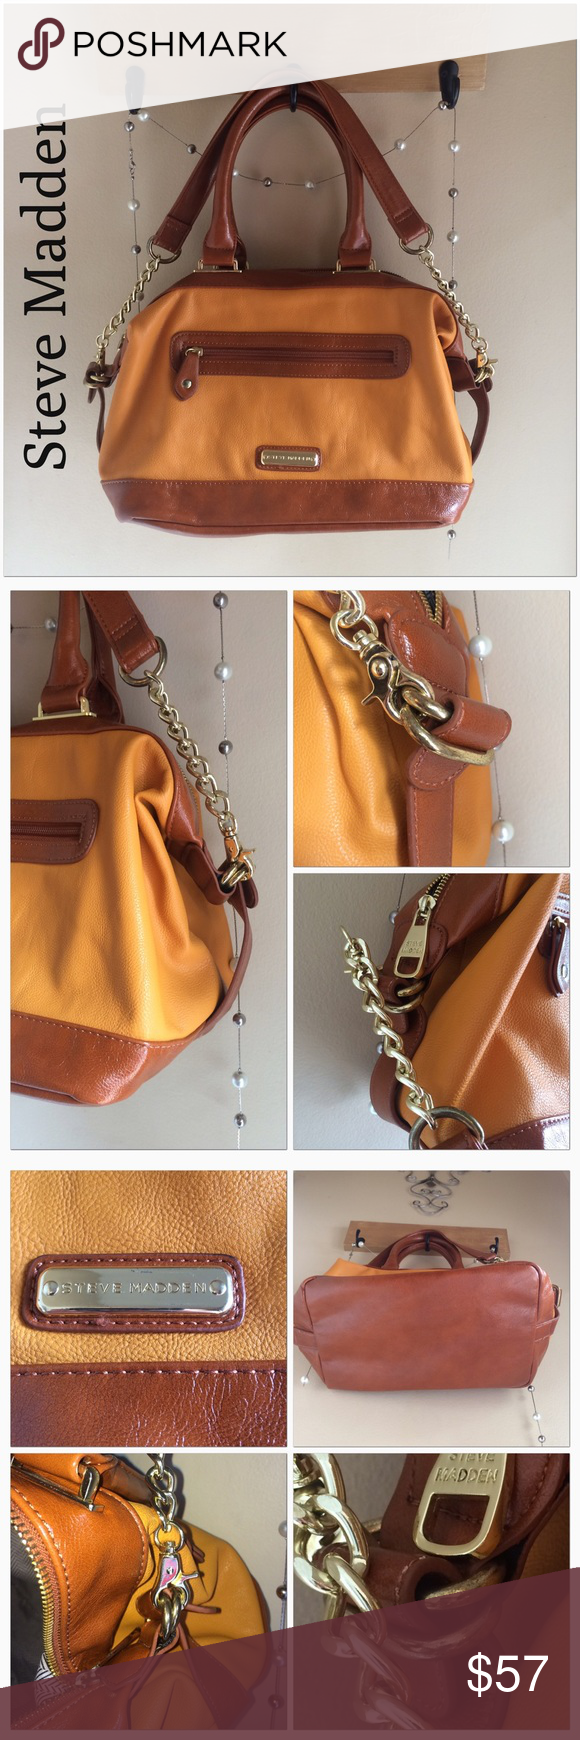 Steve Madden Hobo Bag Mustard and Brown Beautiful Mustard and Red-Brown bag. Carry handles and shoulder strap included. This bag has ton of room and is a great color for your fall and winter outfits!! Used once and has a tiny bit of tarnishing on the side hardware. I'm not sure why though Steve Madden Bags Hobos